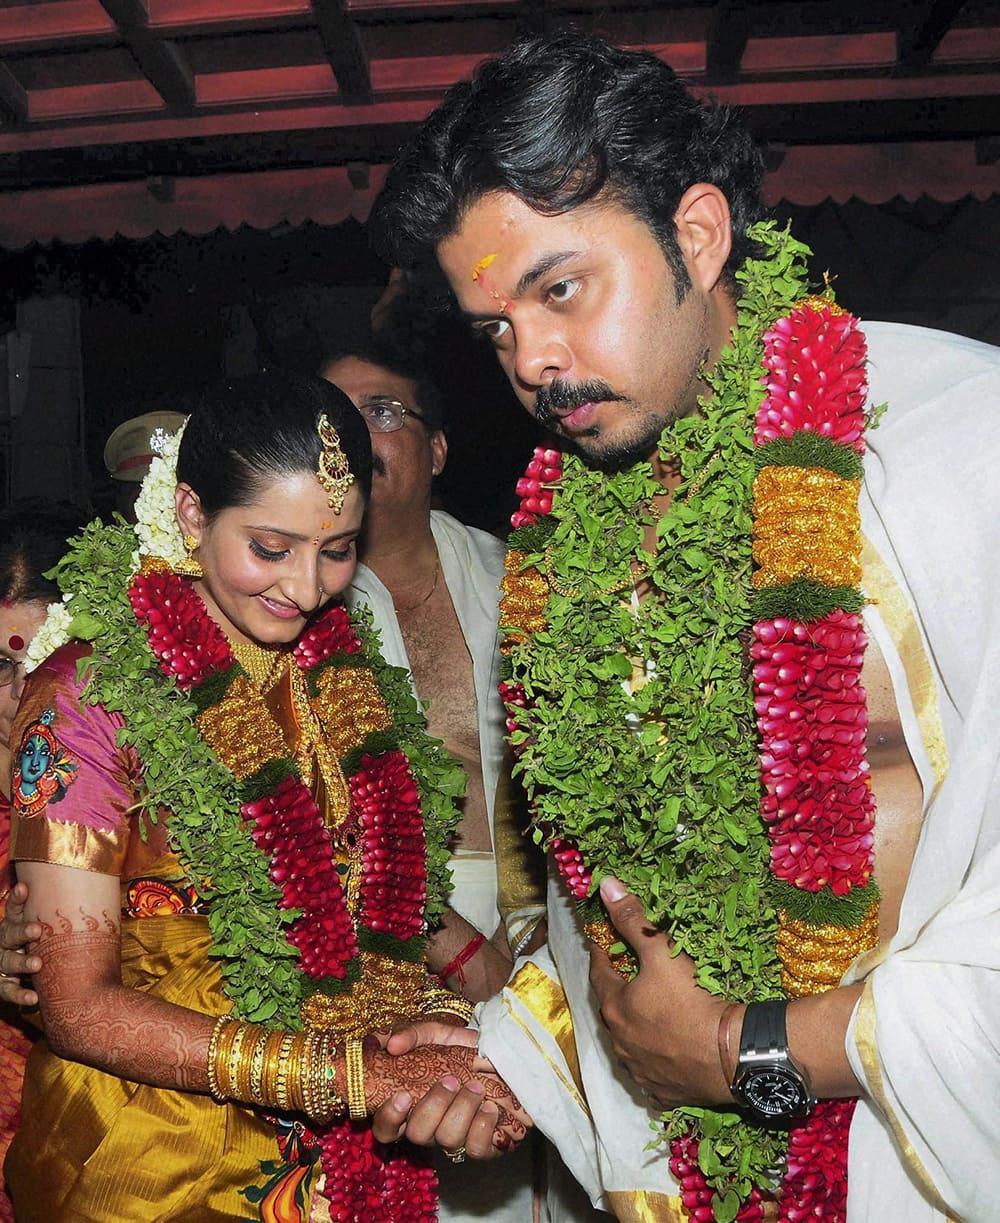 Cricketer S Sreesanth with Bhuwneswari Kumari, hailing from a royal family in Rajasthan, during their wedding at Sri Krishna temple in Guruvayur.